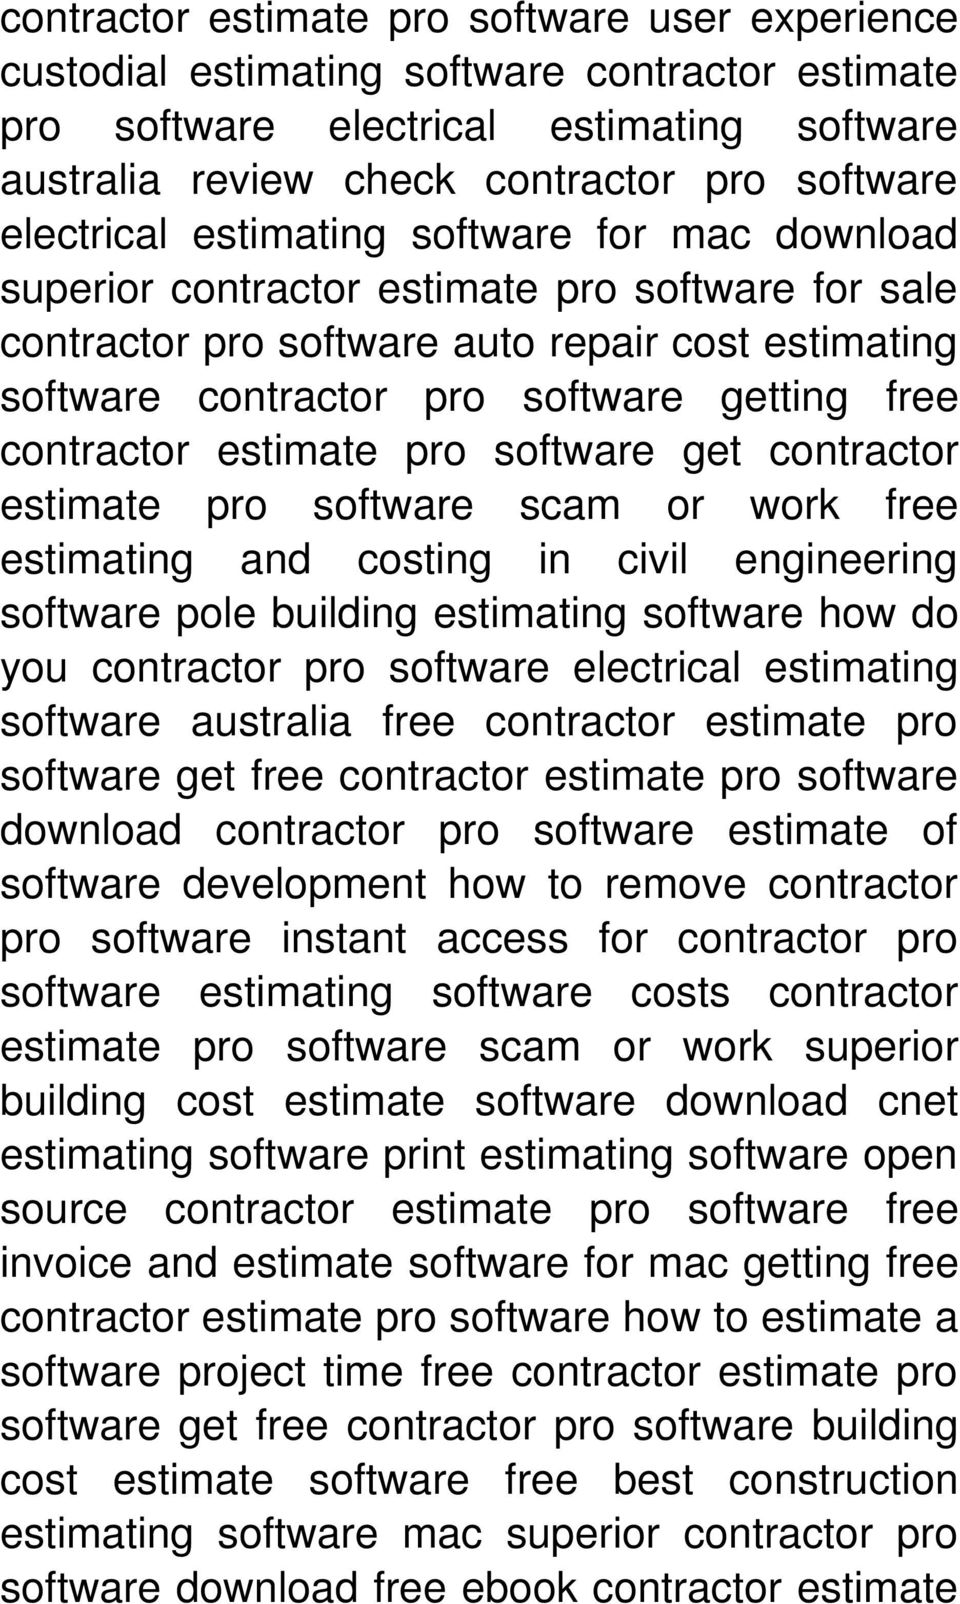 contractor estimate pro software get contractor estimate pro software scam or work free estimating and costing in civil engineering software pole building estimating software how do you contractor